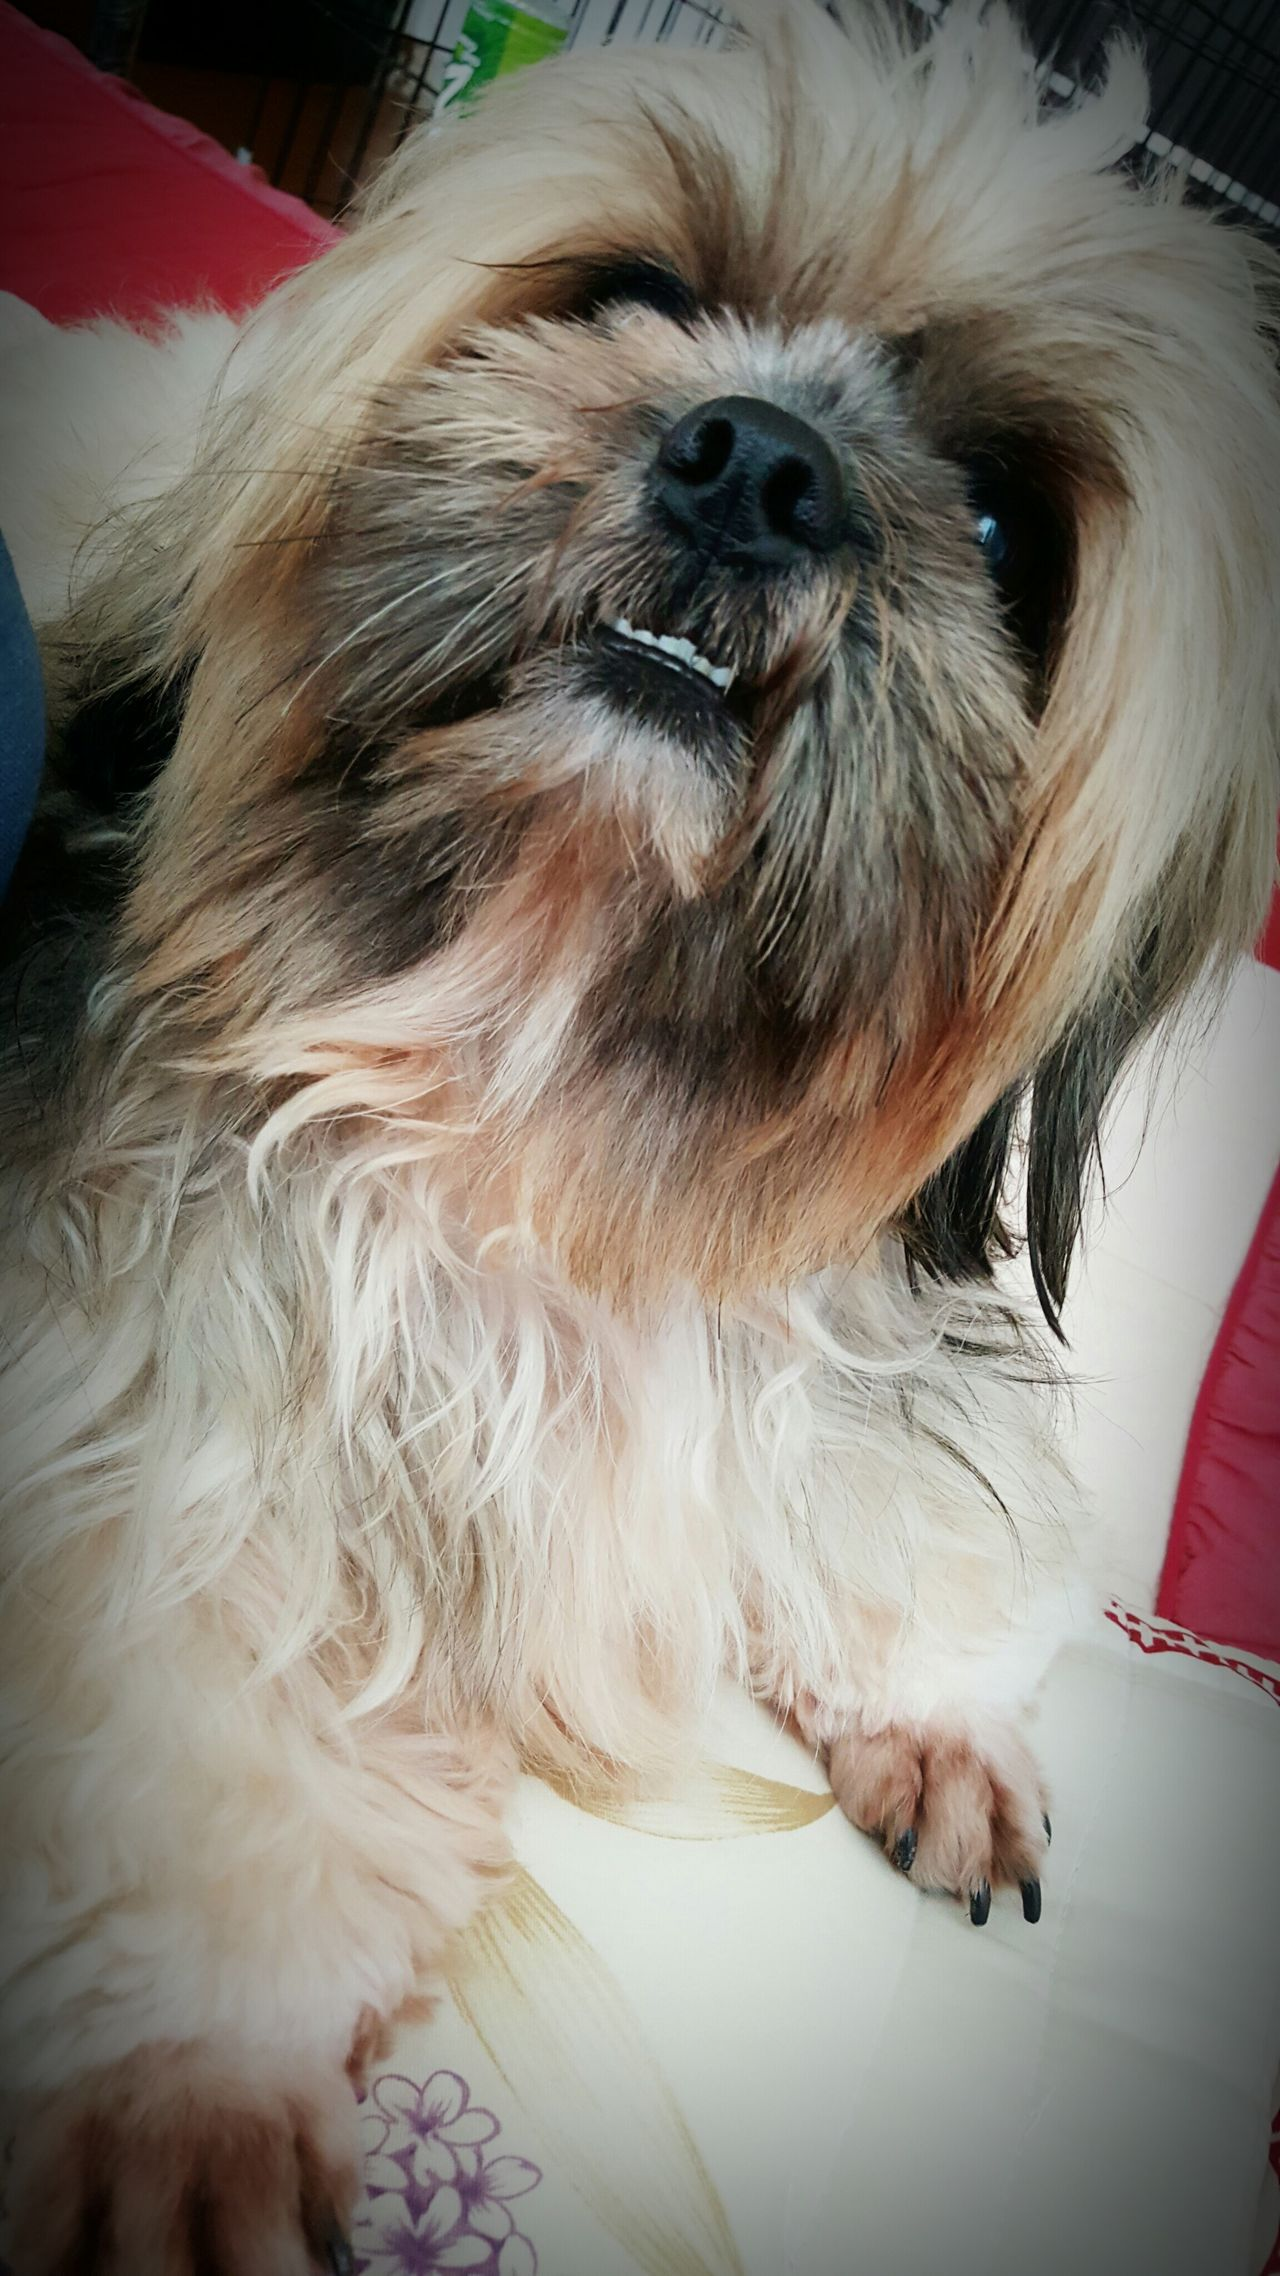 """Meet Cile read as """"Sayl"""" another bundle of joy Dogs Cute Royal Fluffy Lovedogs Love My Family ❤ Baby Dog Doggy Love Sweet Dog 🐶 Dogsarefamily Dogs Of EyeEm Dogoftheday Love❤ Dog❤"""